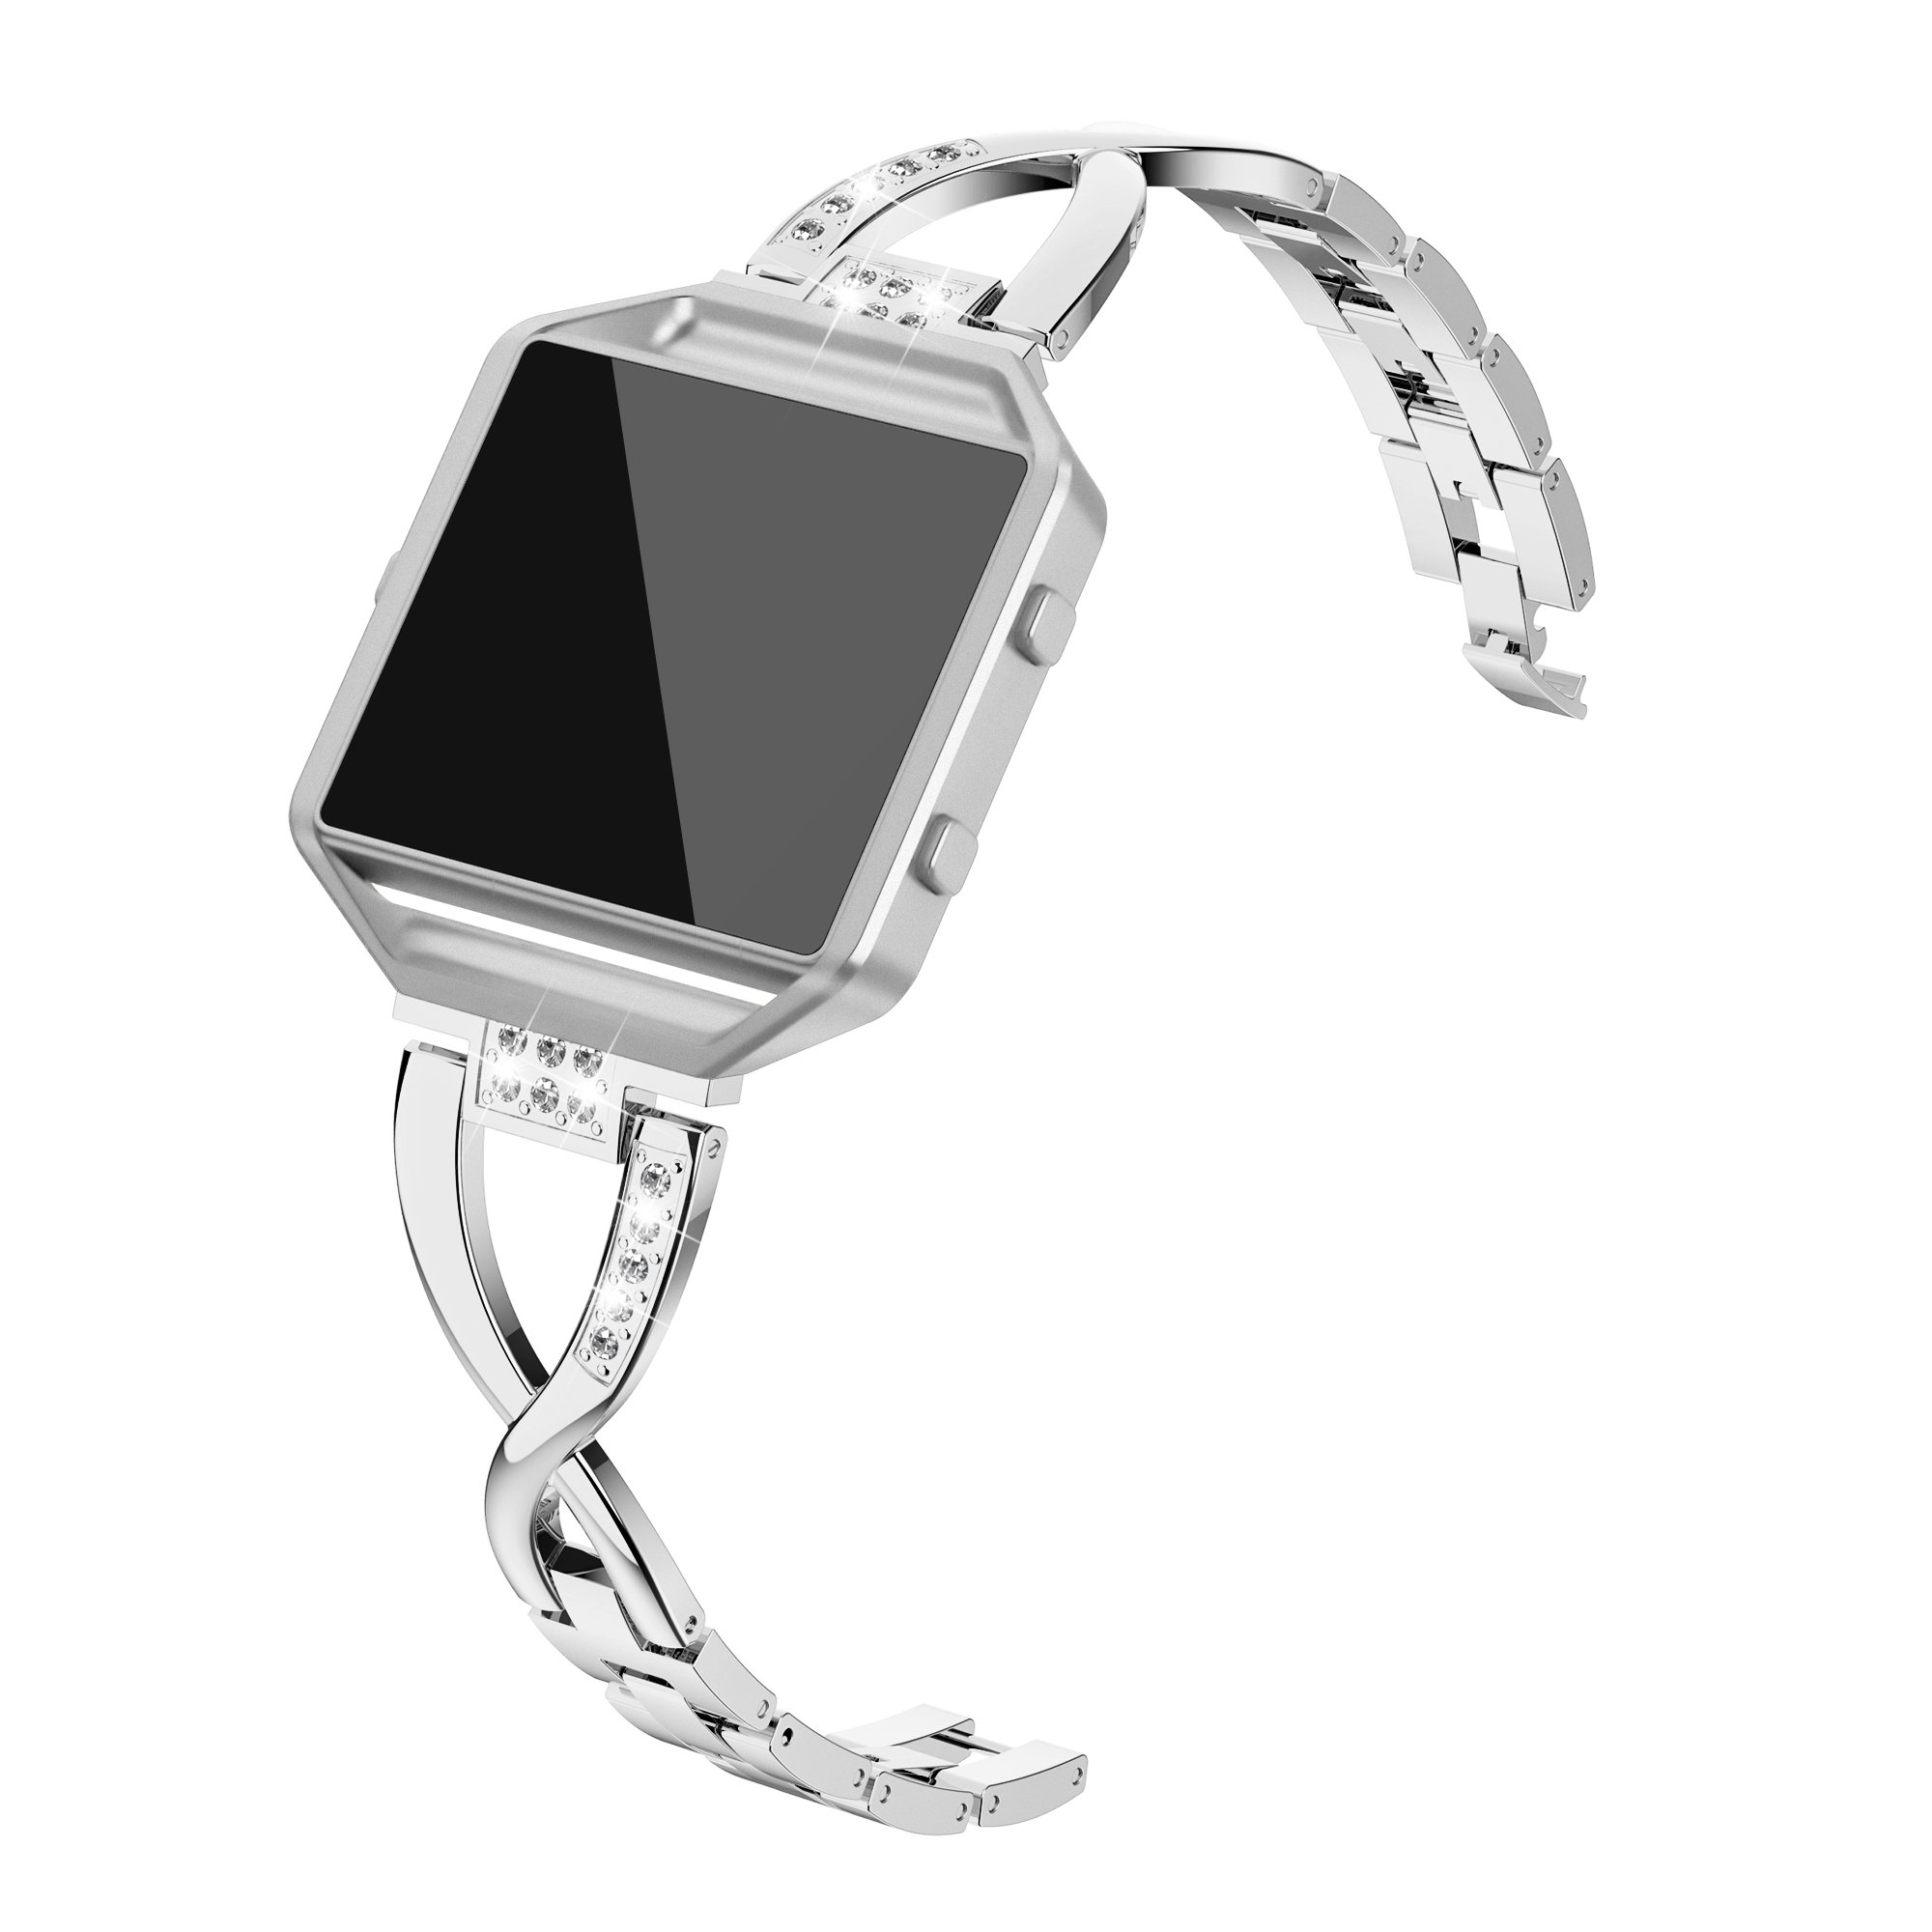 AFBand for Fitbit Blaze Band, Rhinestone Replacement Accessory Straps Metal Wrist Bands with Frame for Women